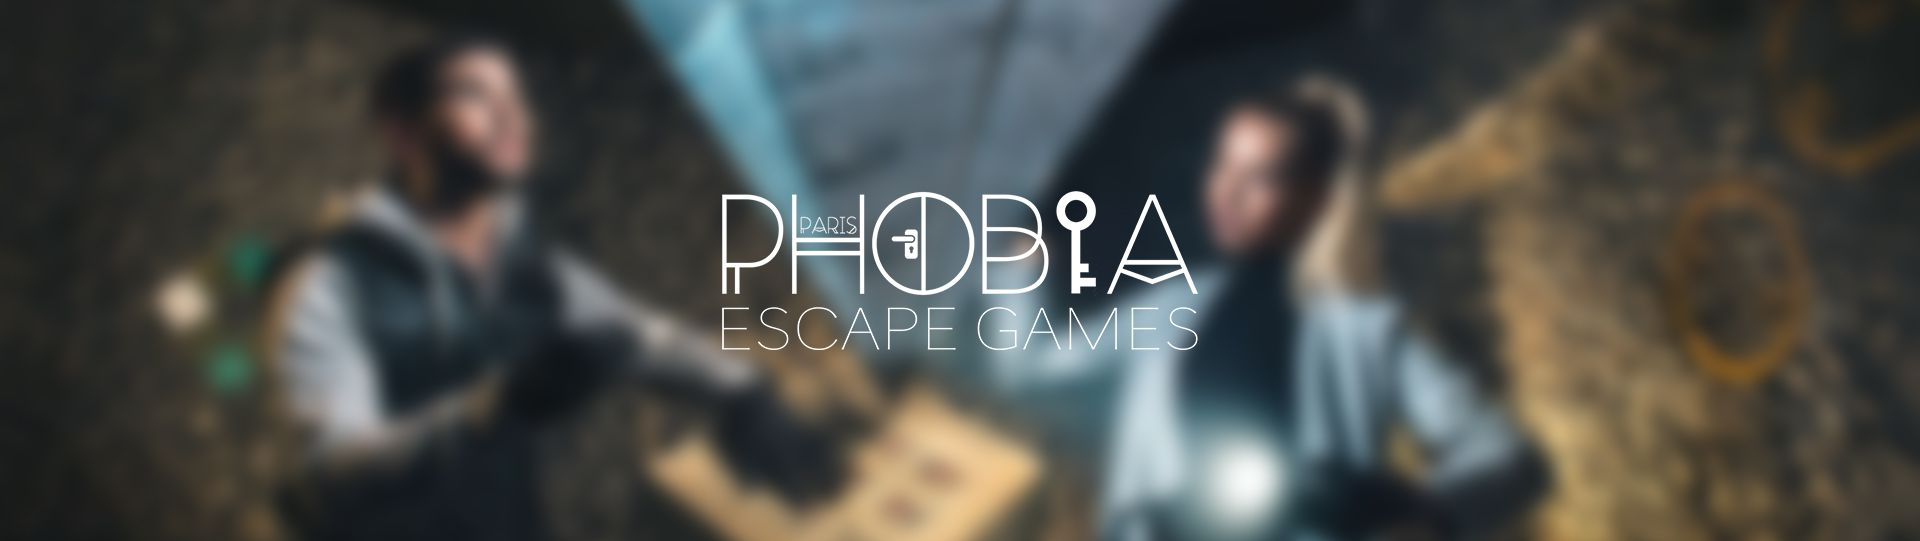 Phobia escape game pour 2 personnes.jpg